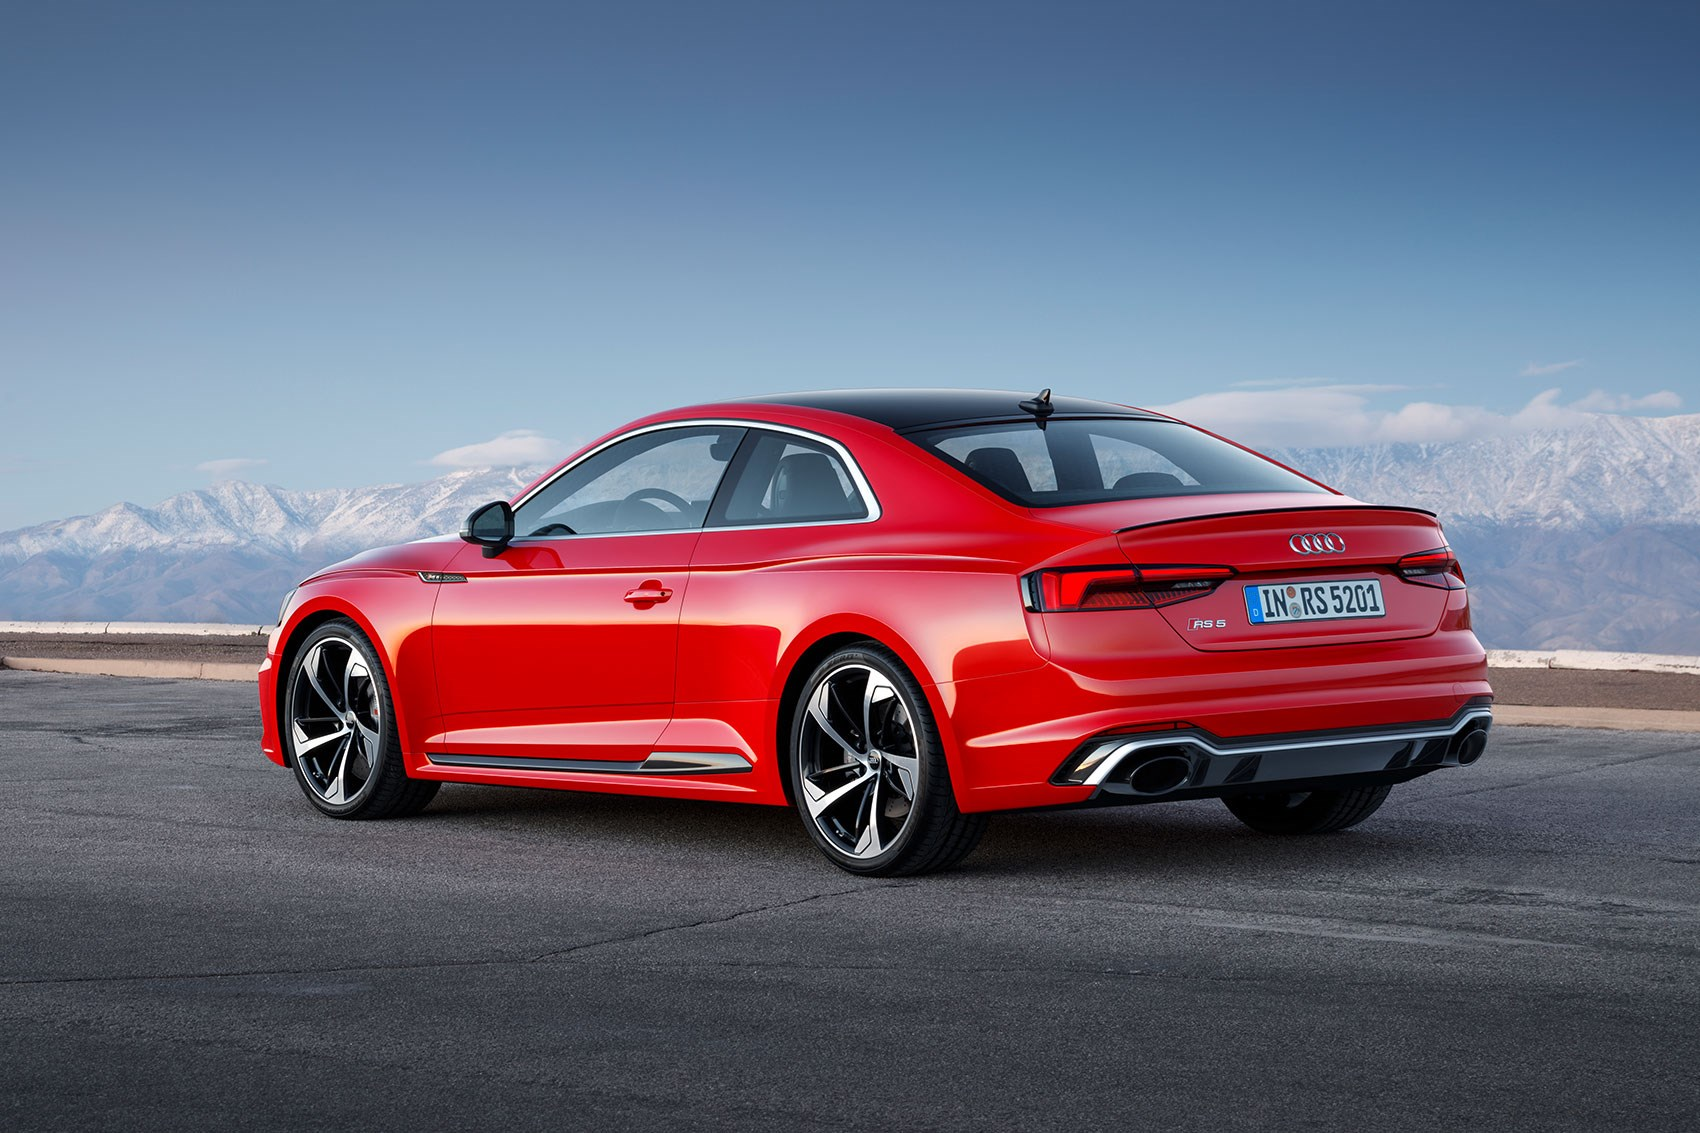 Audi Cars Price List (2019) in India